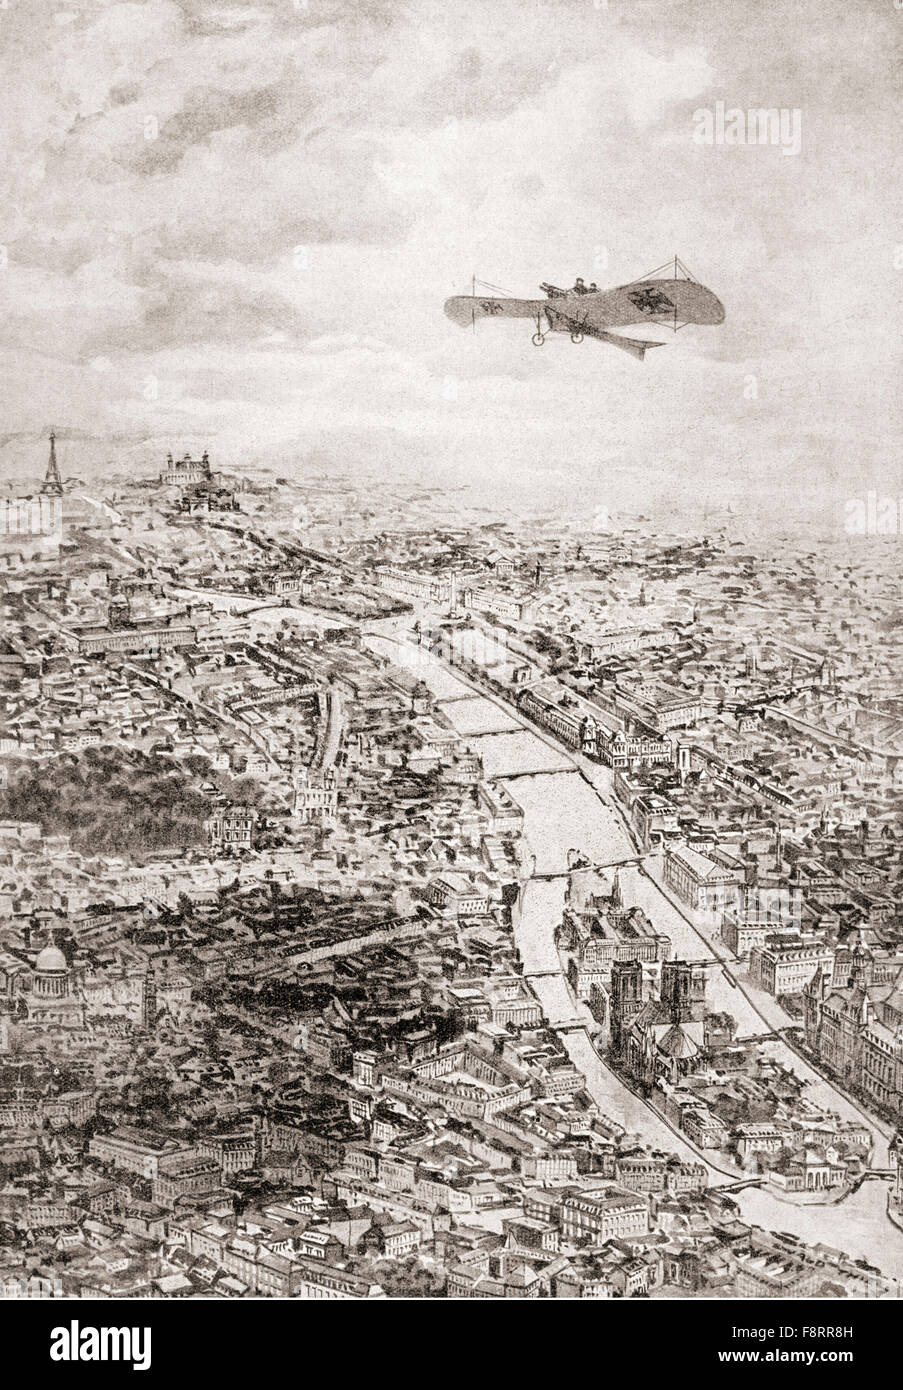 A German aviator flying over Paris, France during WWI. - Stock Image